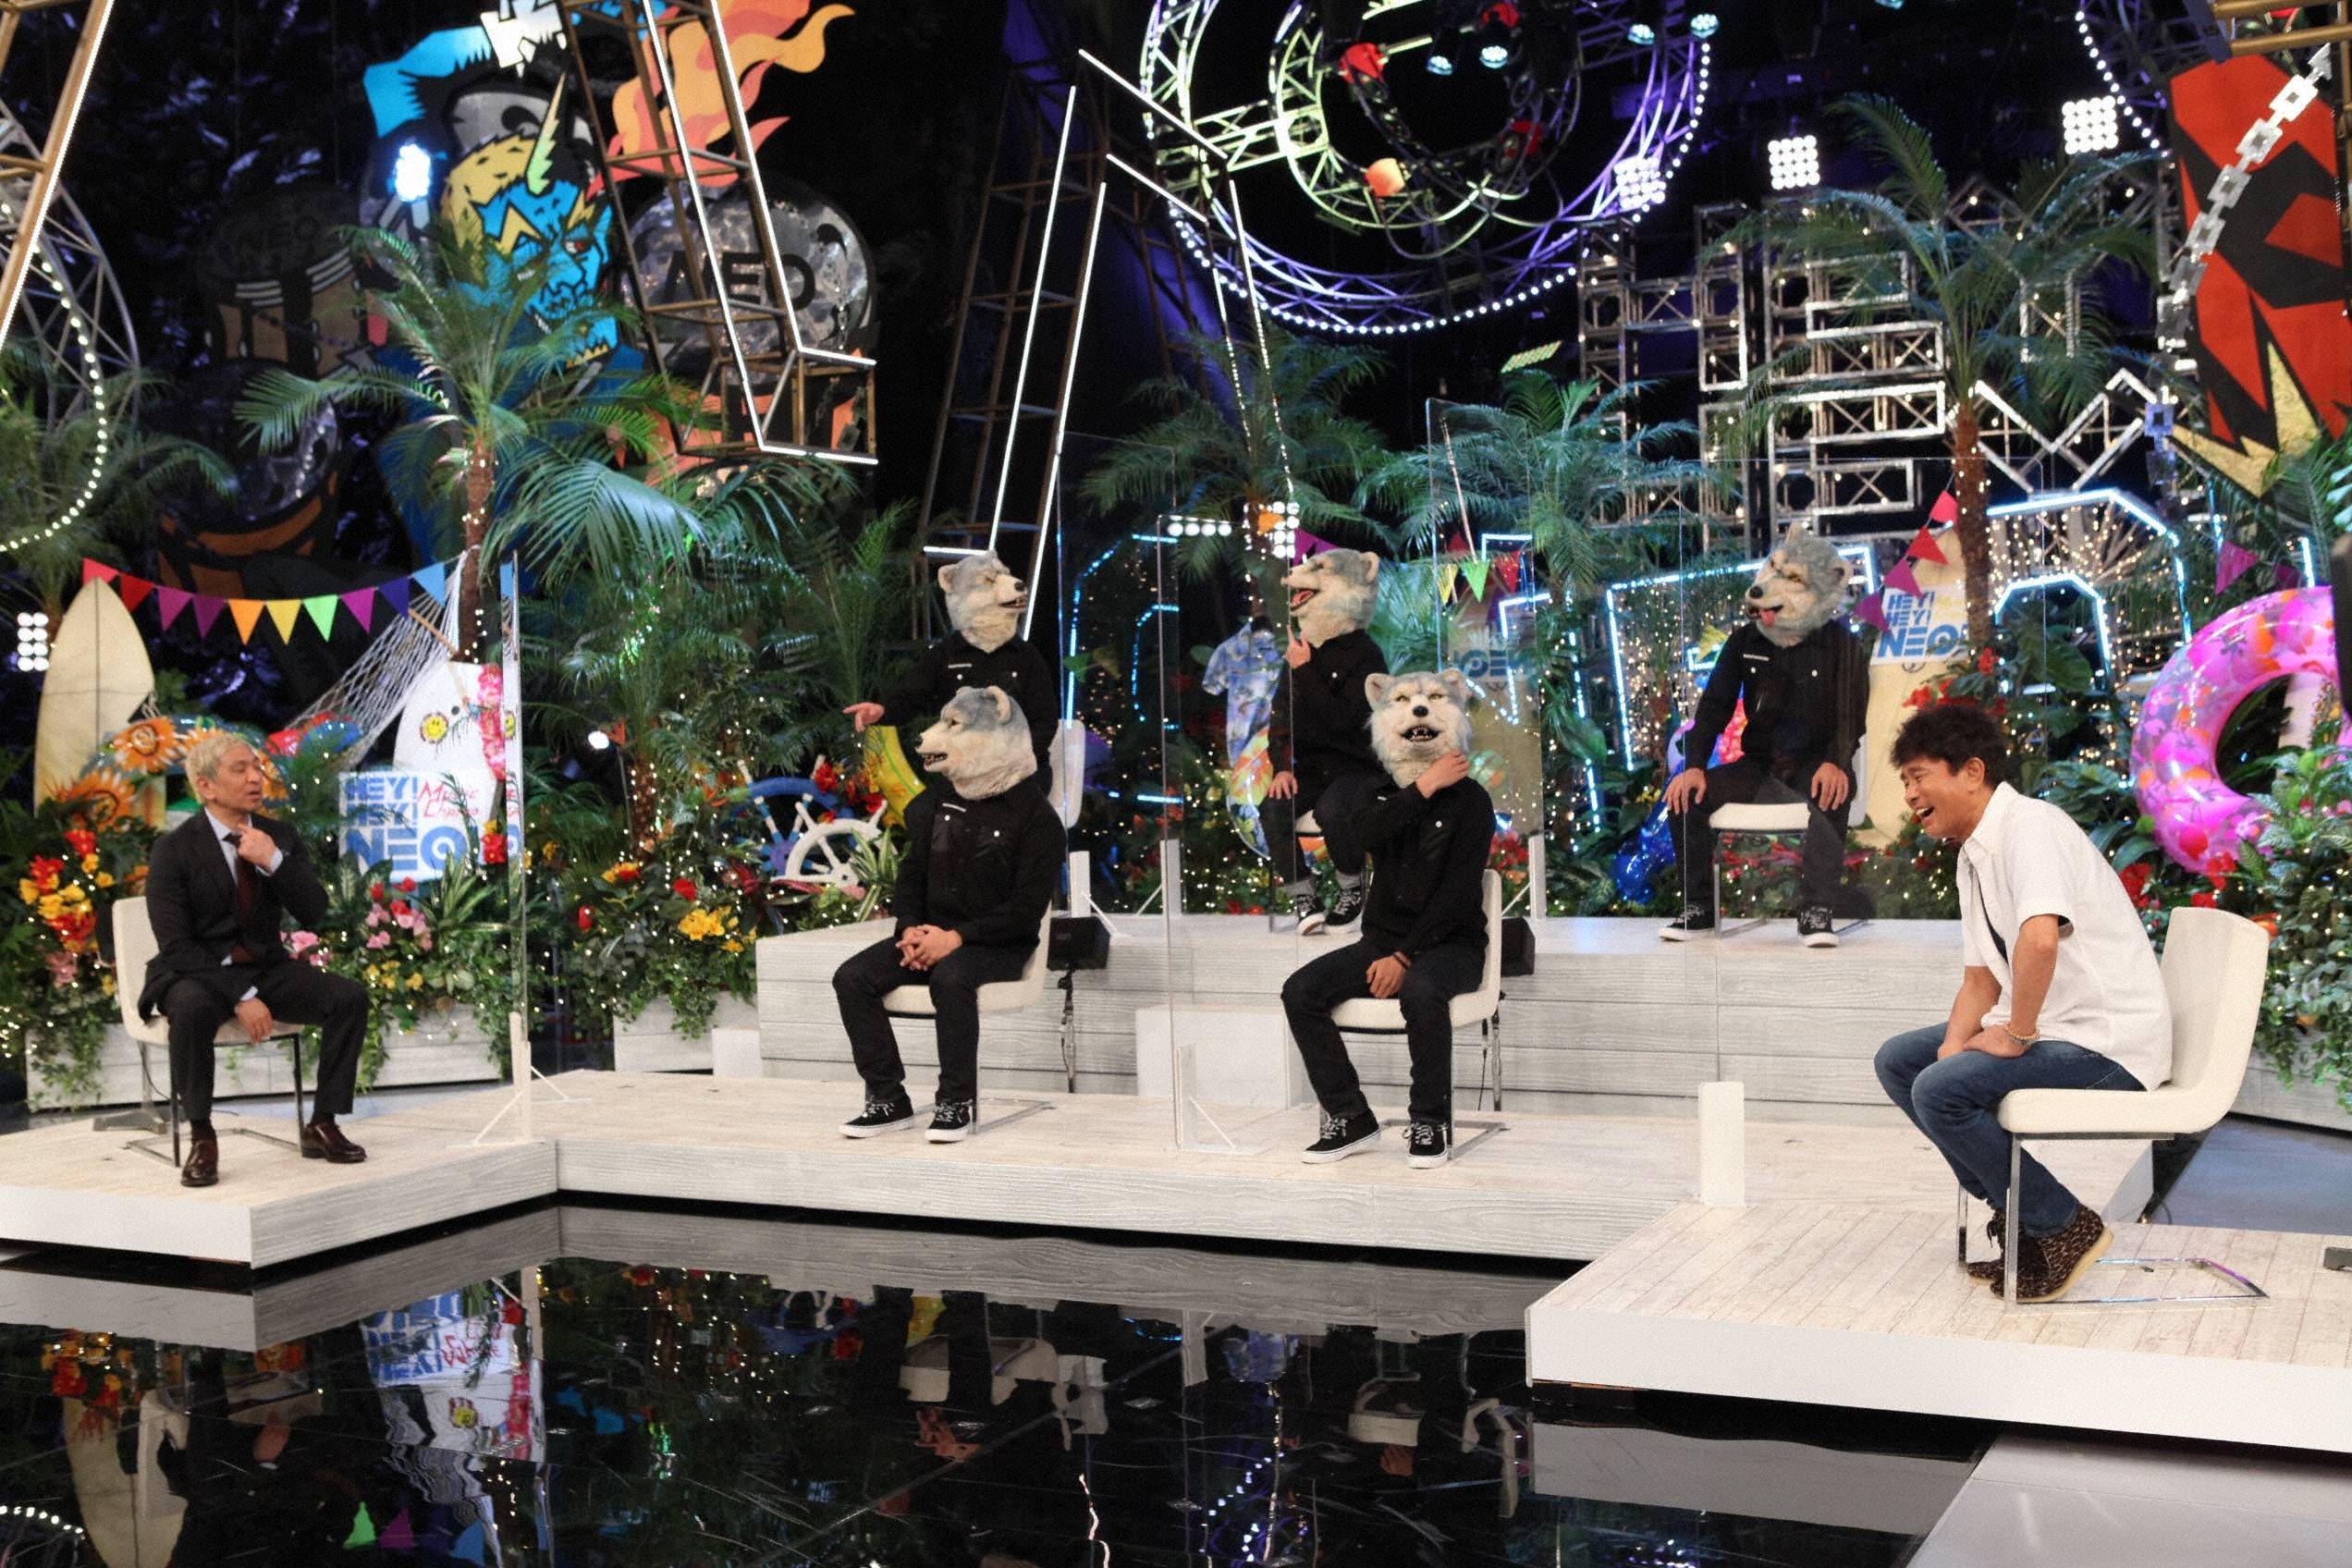 『HEY!HEY!NEO! MUSIC CHAMP』に出演のダウンタウンとMAN WITH A MISSION